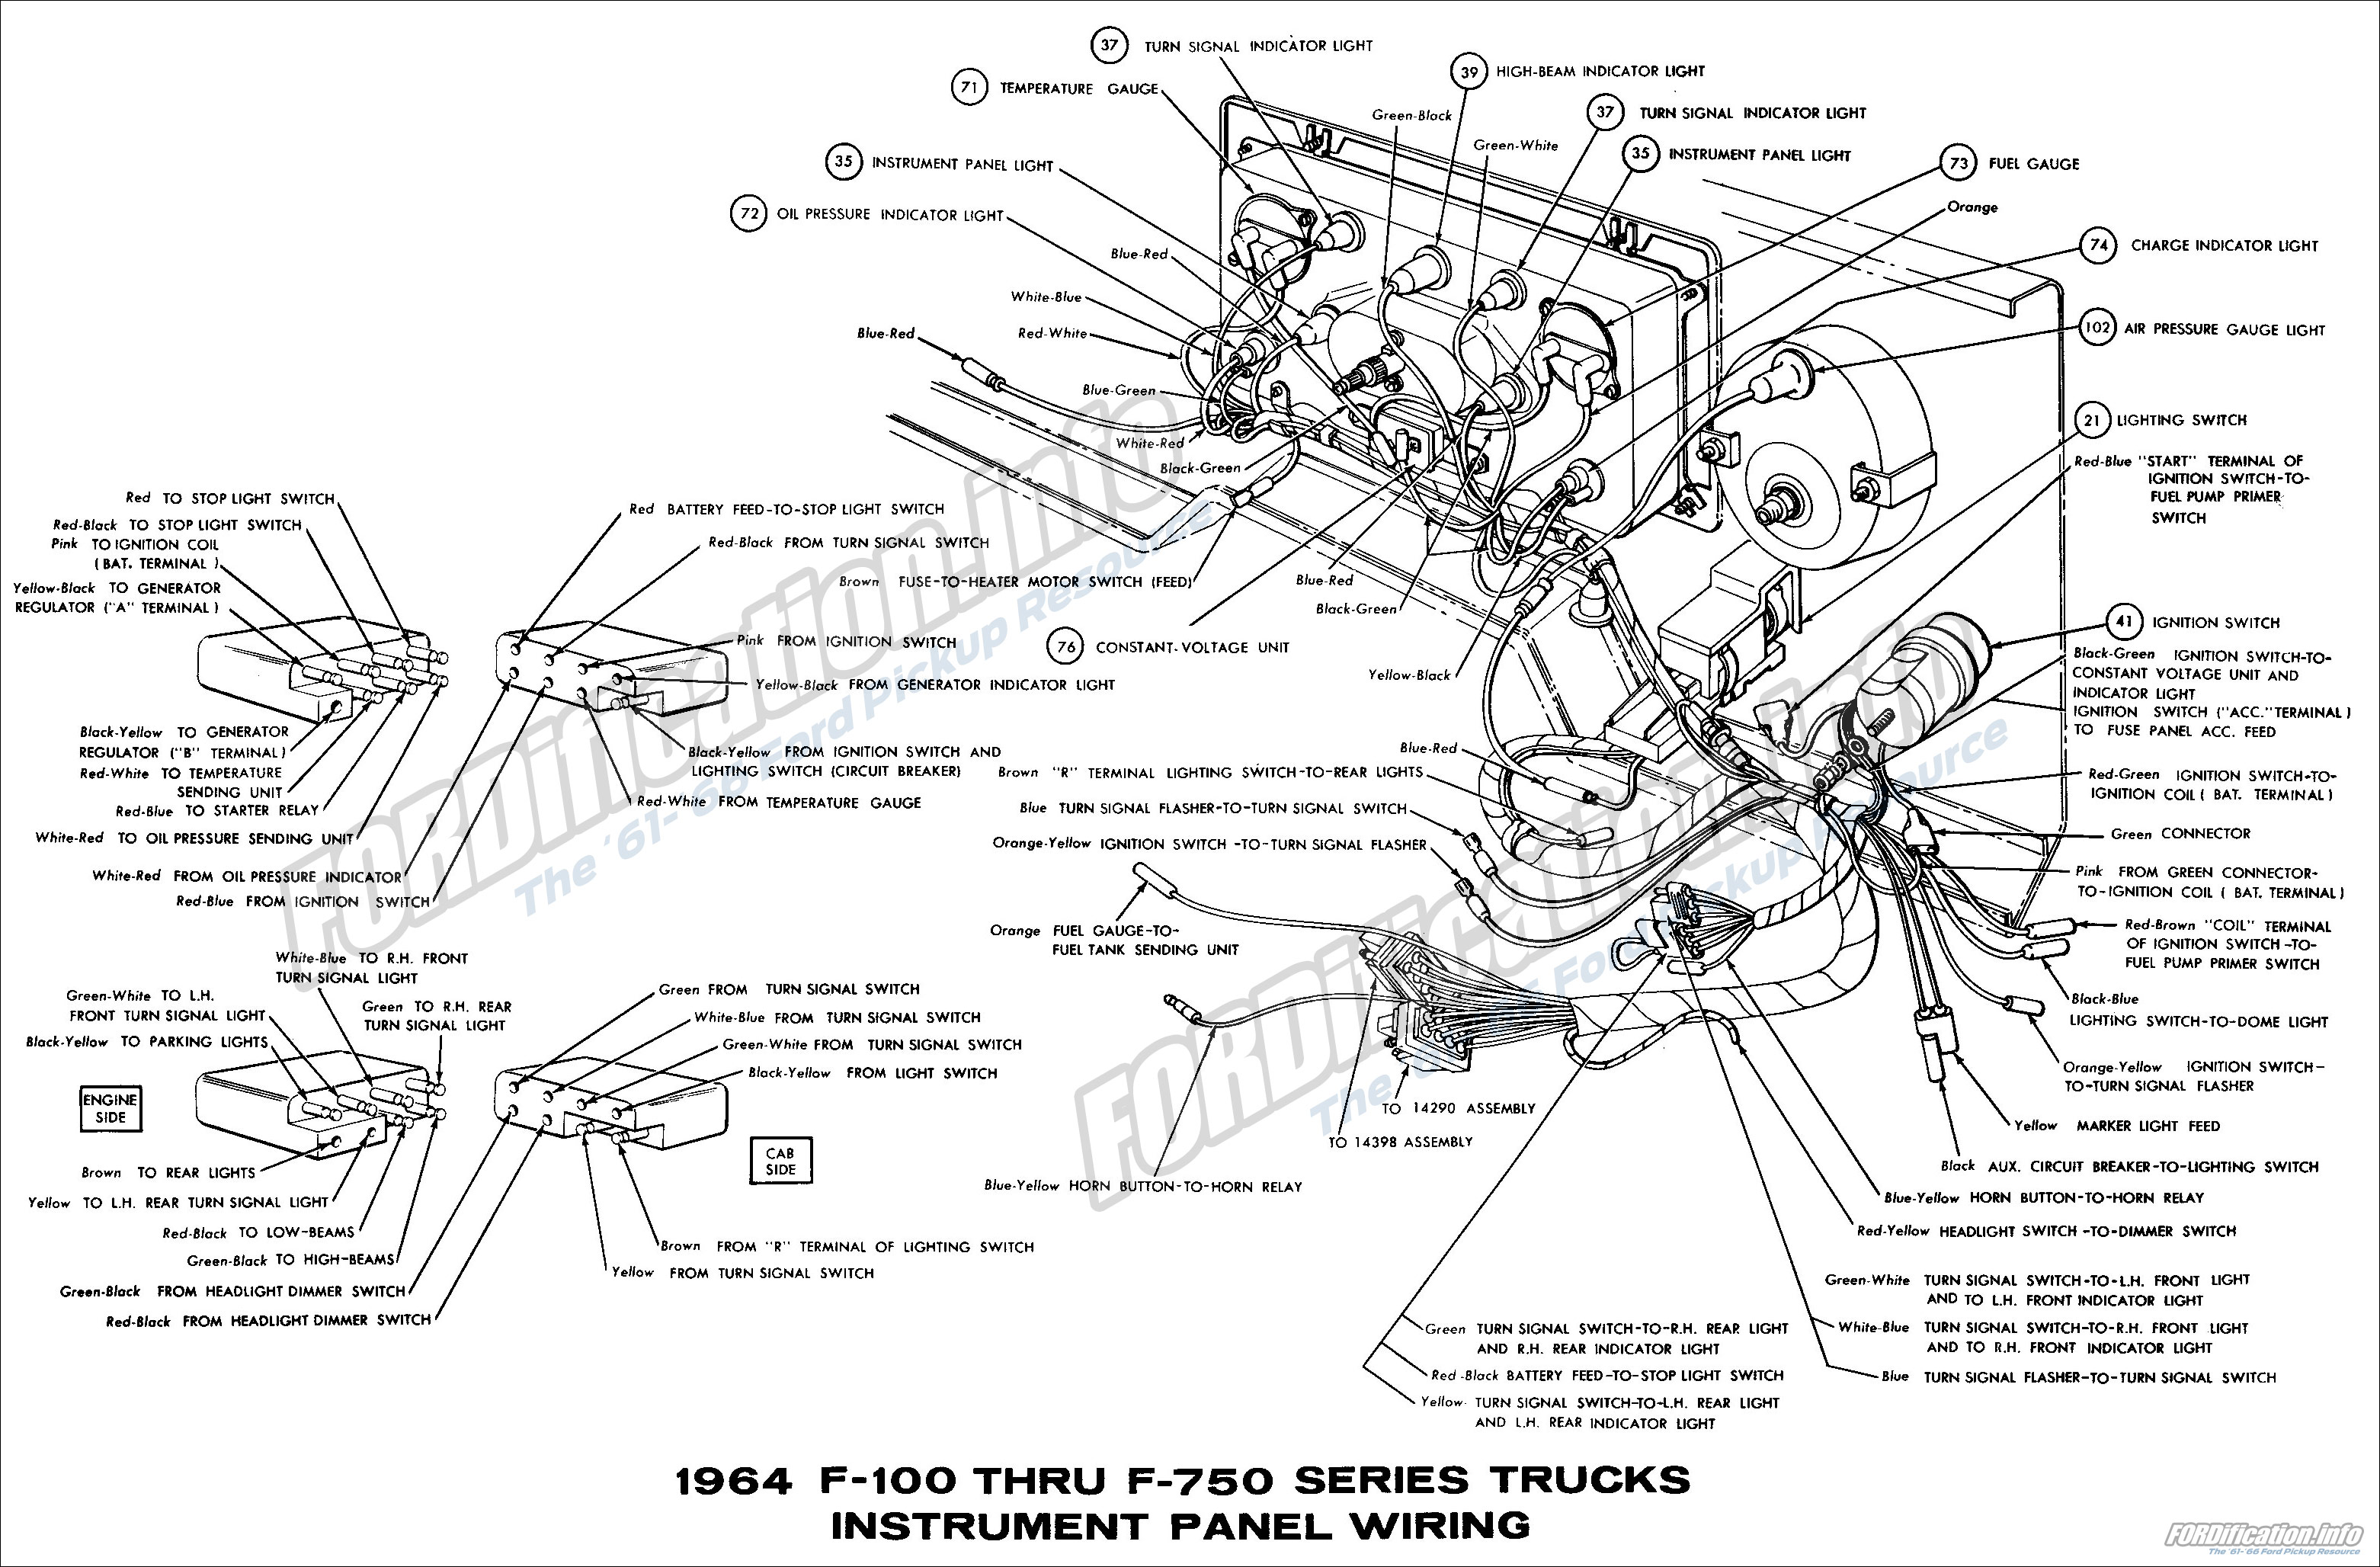 64 F100 Wiring Diagram Books Of Ranchero For 1964 Ford The